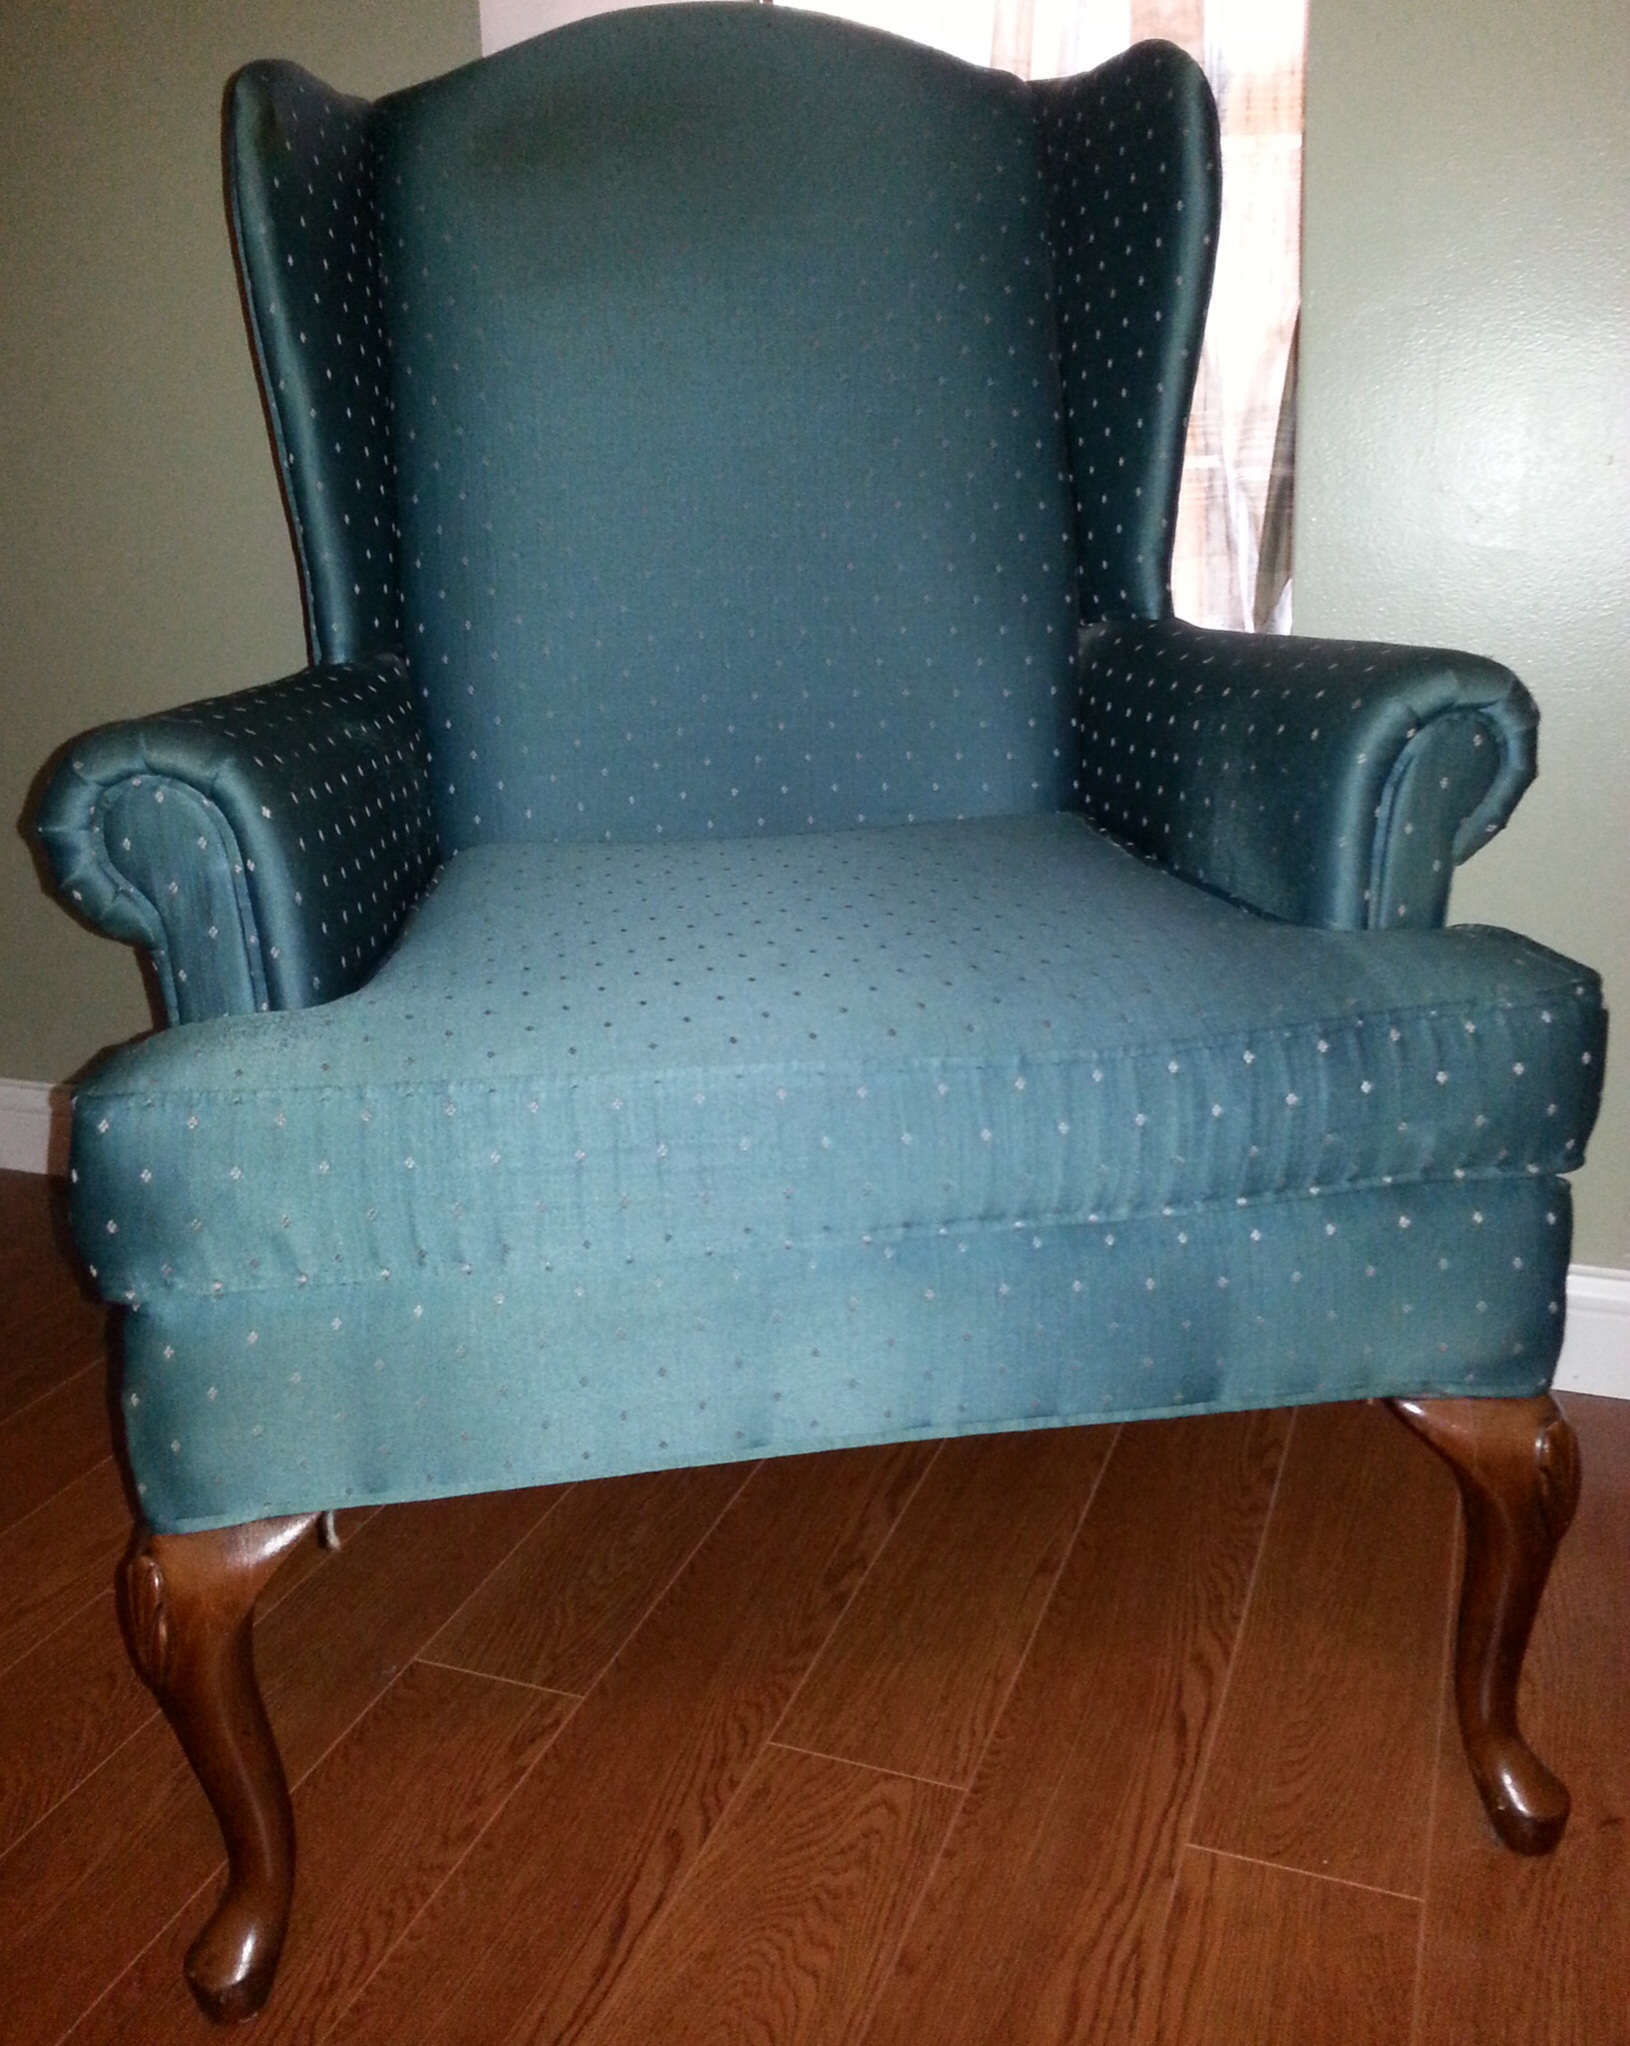 2 Fairfield Chair Company Wingback Chairs